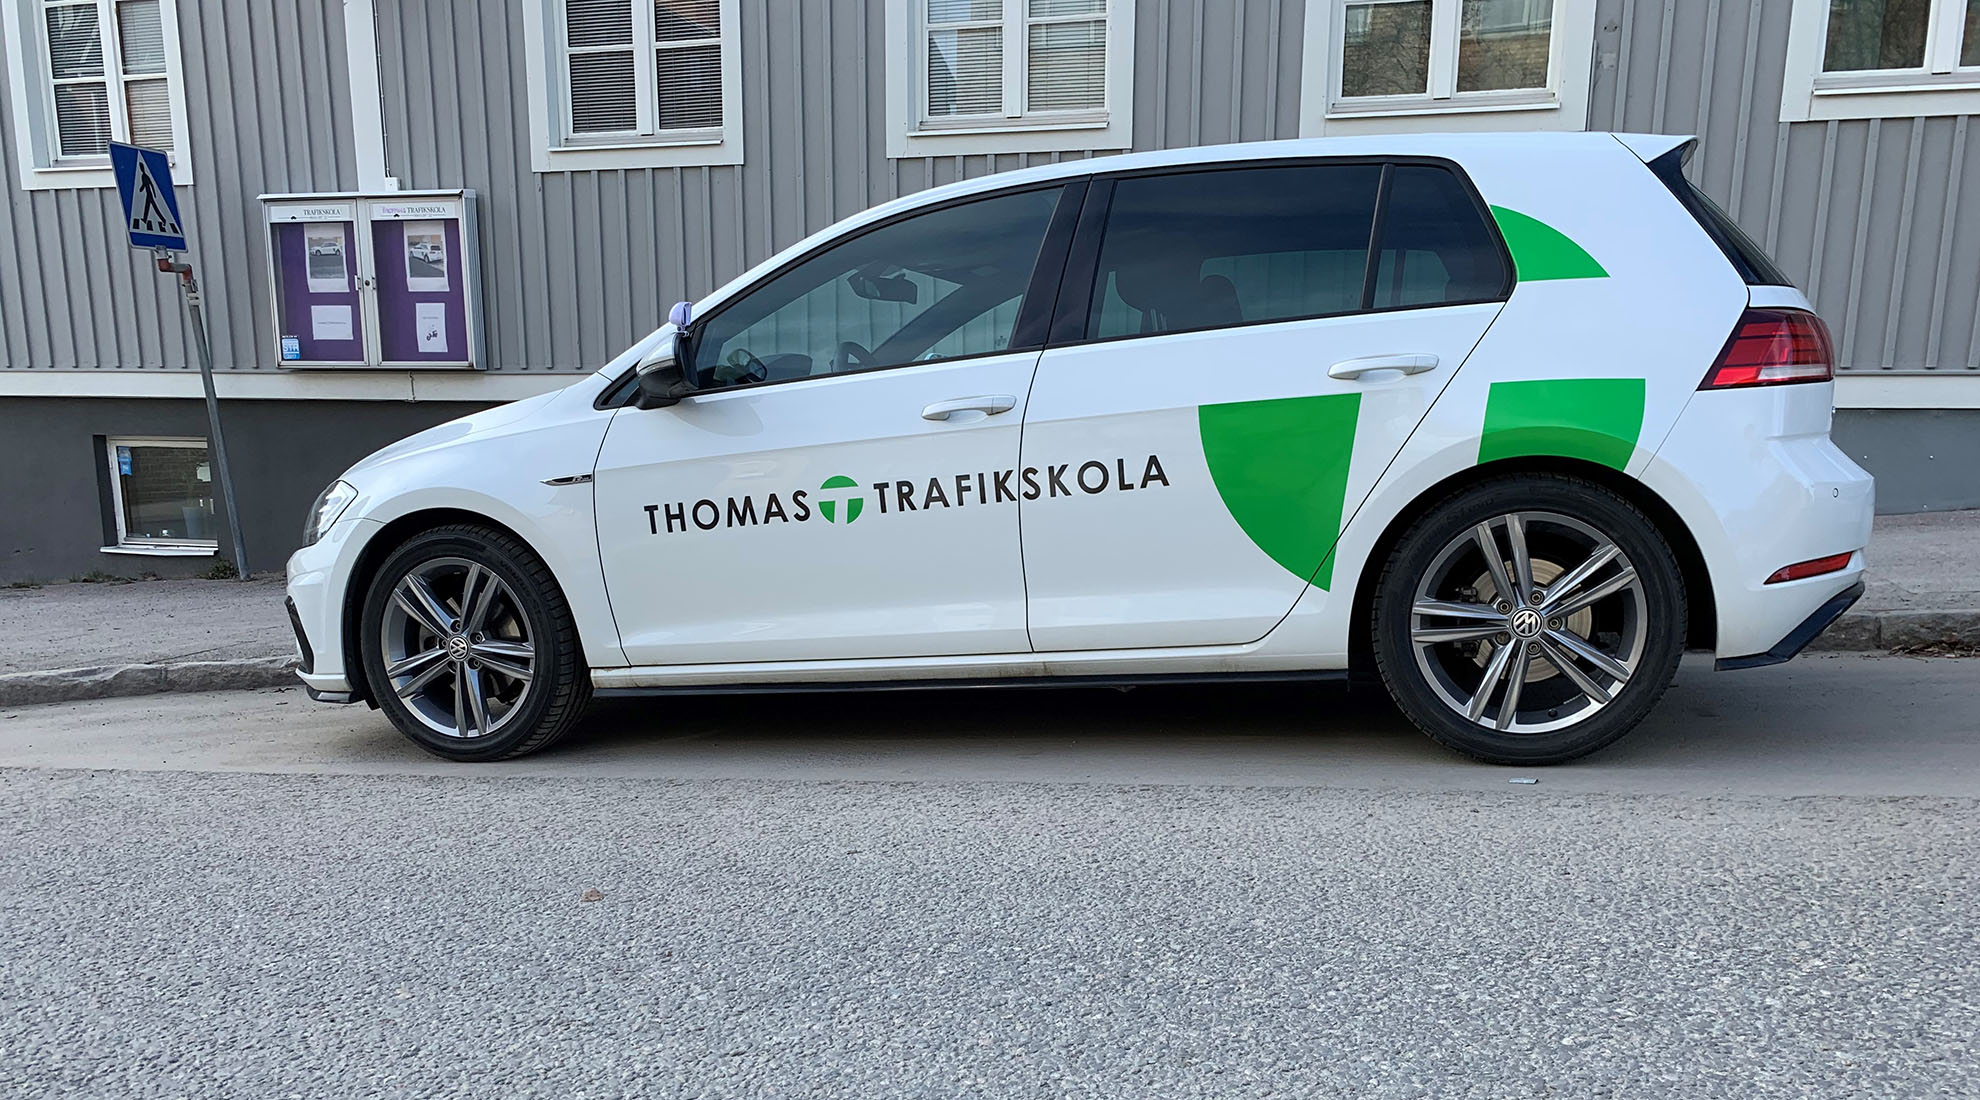 Thomastrafikskola_golf2020